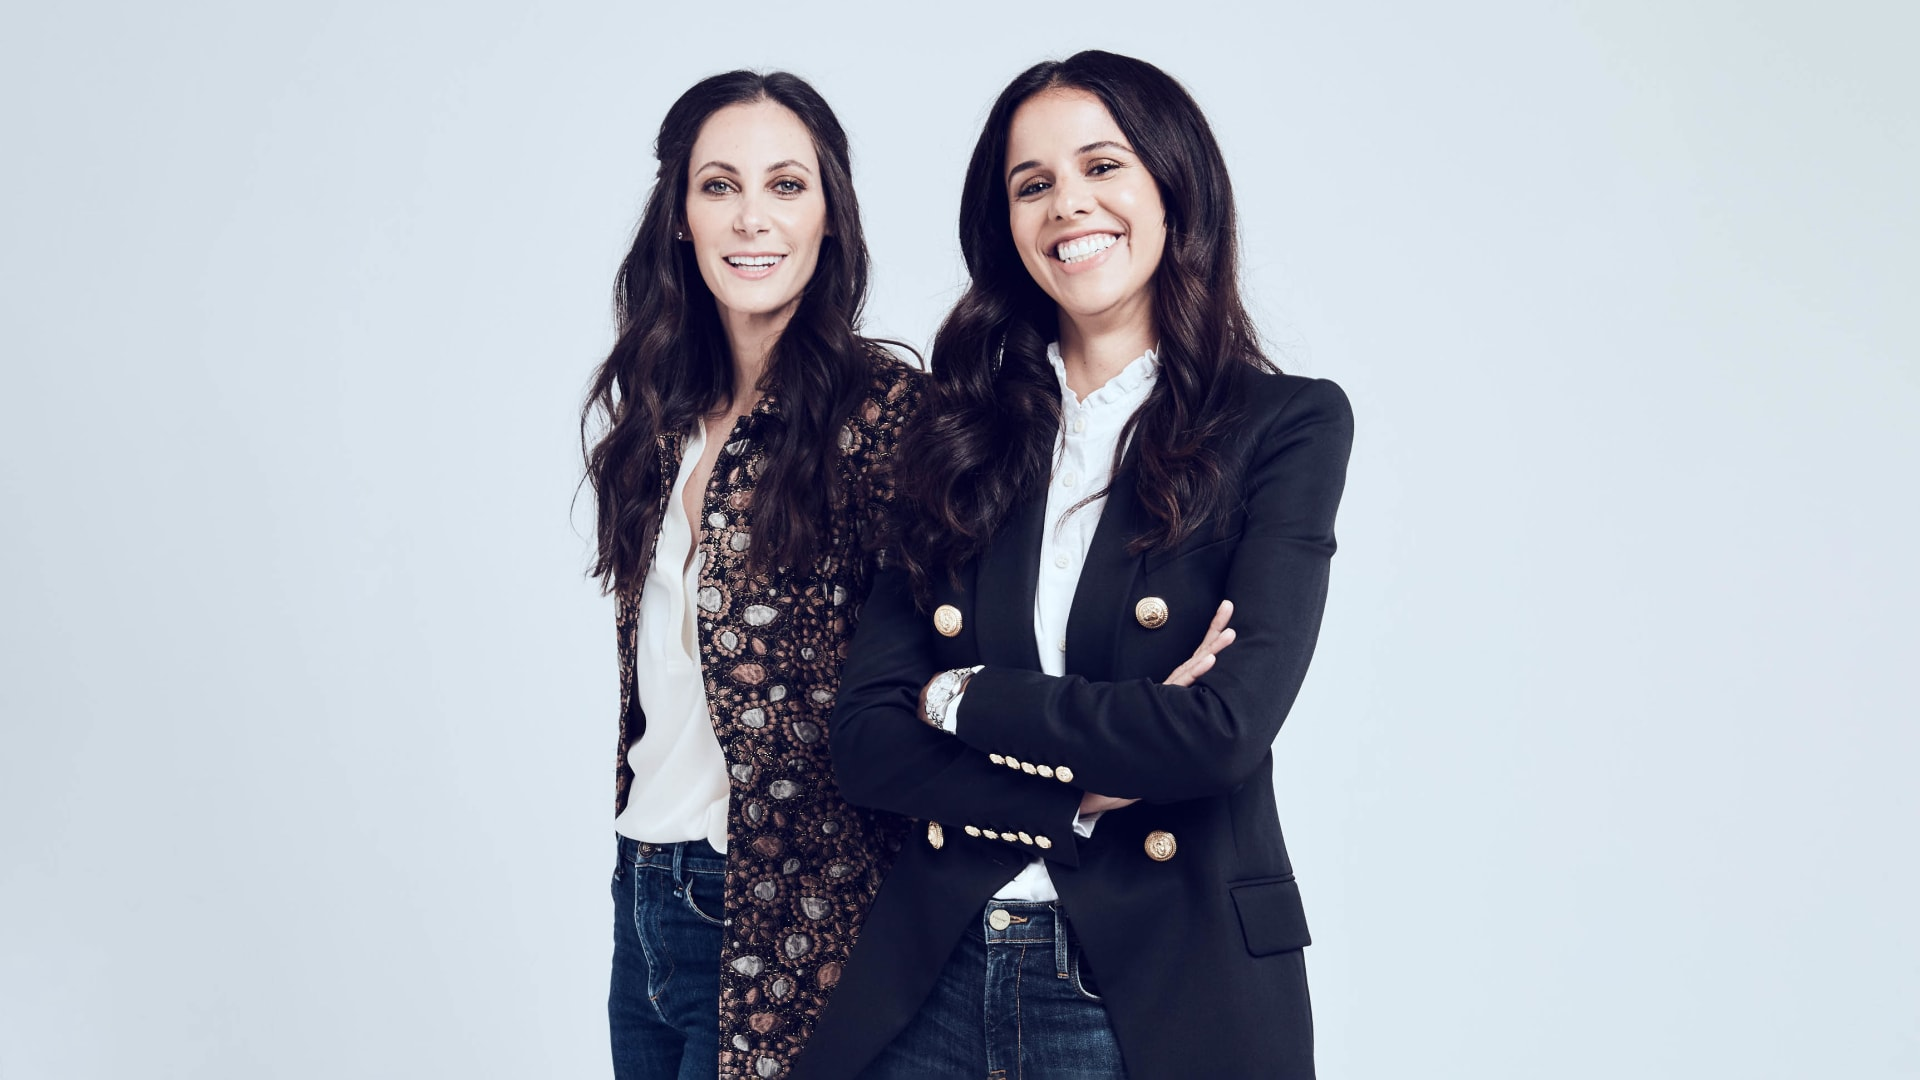 From Left: Heather Hasson and Trina Spear, Co-founders of Figs, which makes fashionable medical scrubs and masks